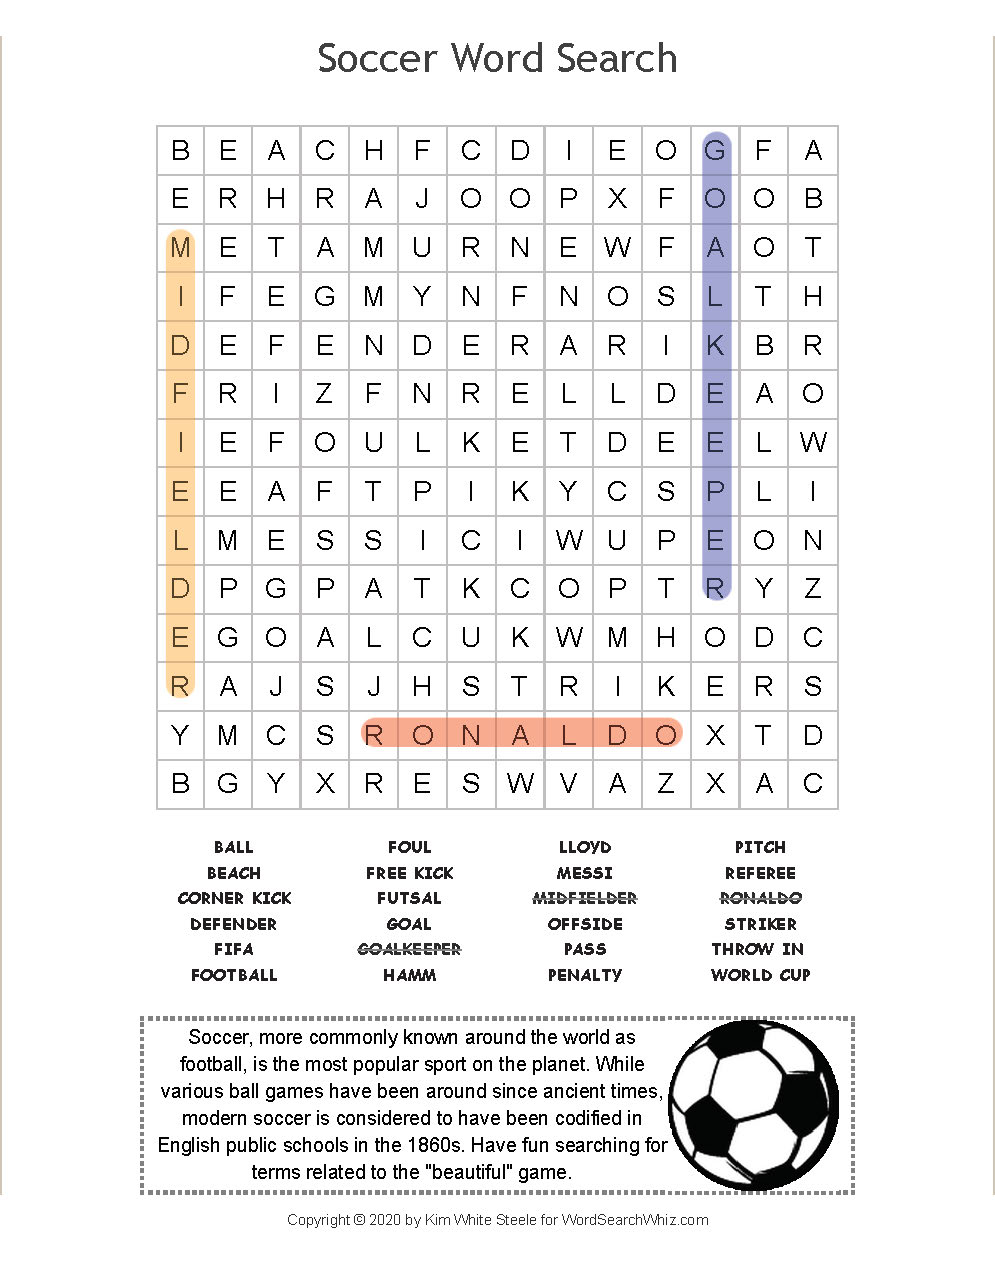 Look For 24 Vocabulary Words In This Soccer Themed Word Search Find Game You Can Play It Online Or Print It Out In 2020 Soccer Word Search Puzzles Vocabulary Words